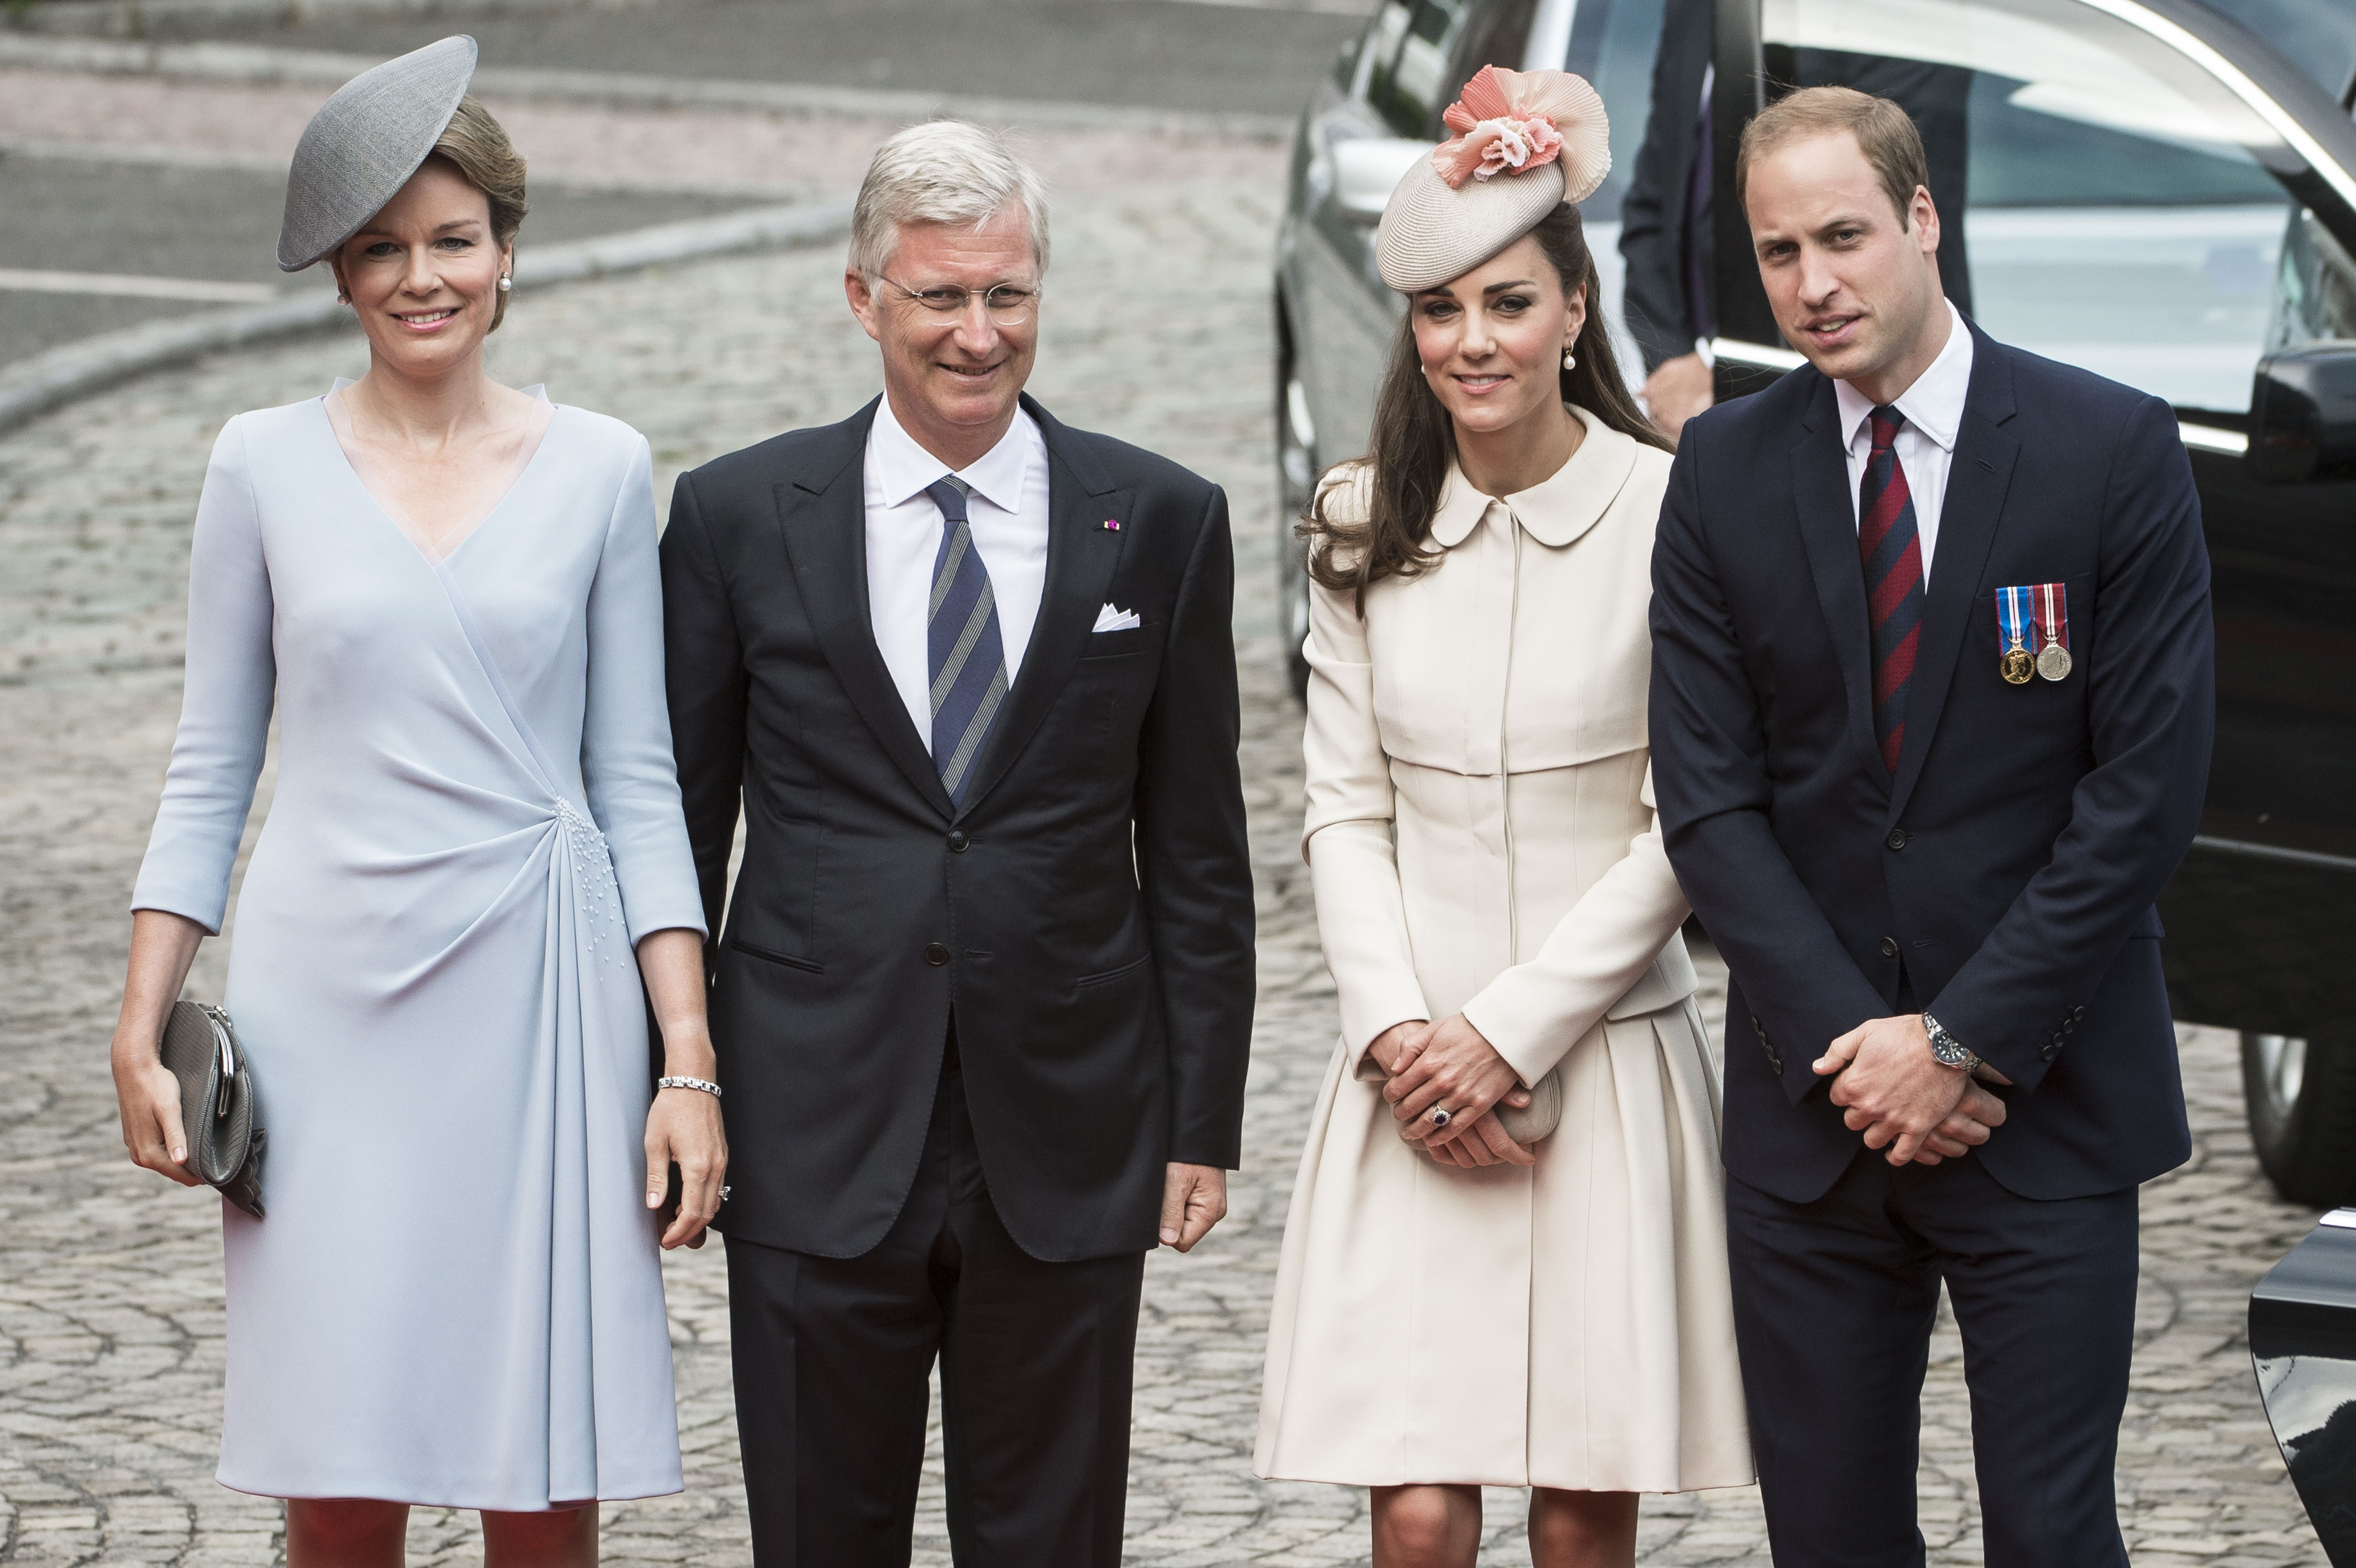 King and Queen of Belgium, Duke and Duchess of Cambridge